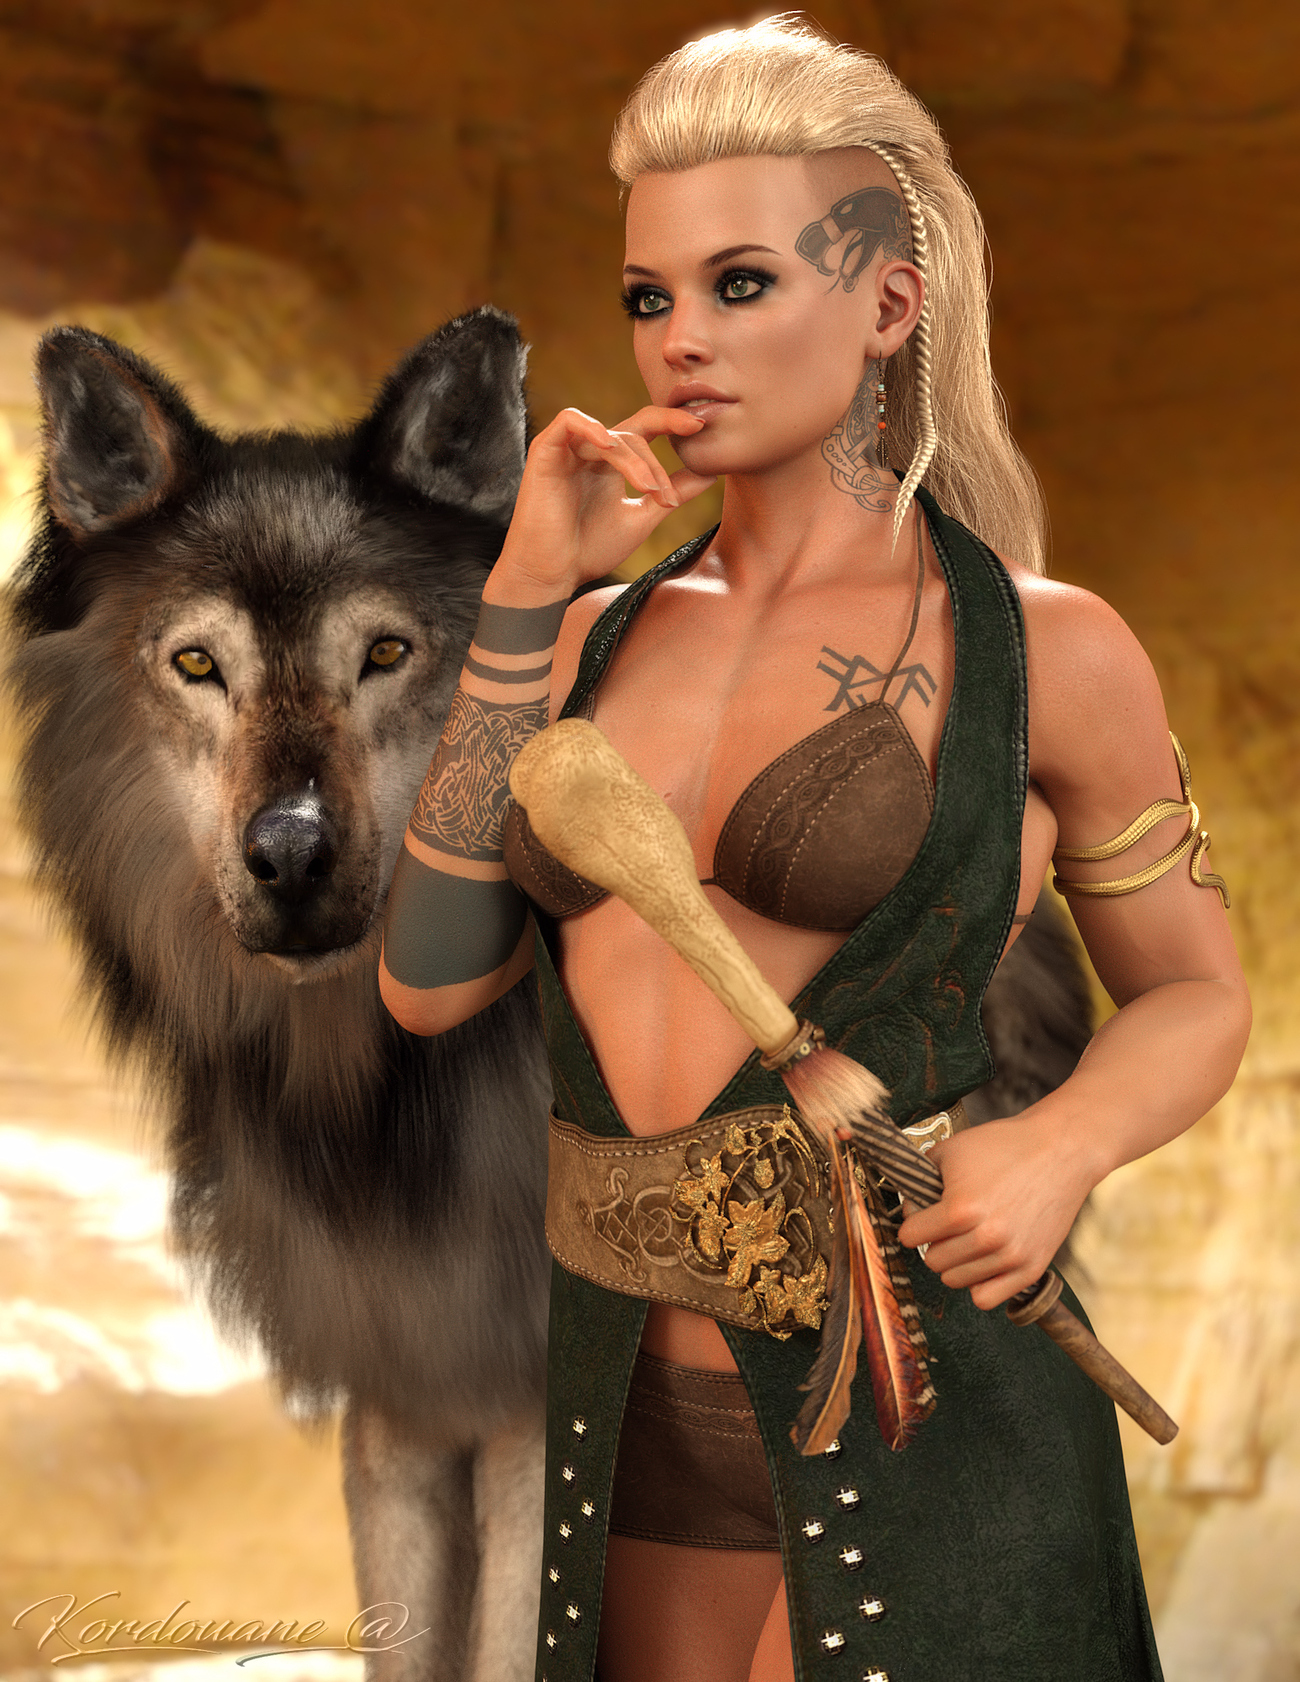 Wild Woman and the Wolf